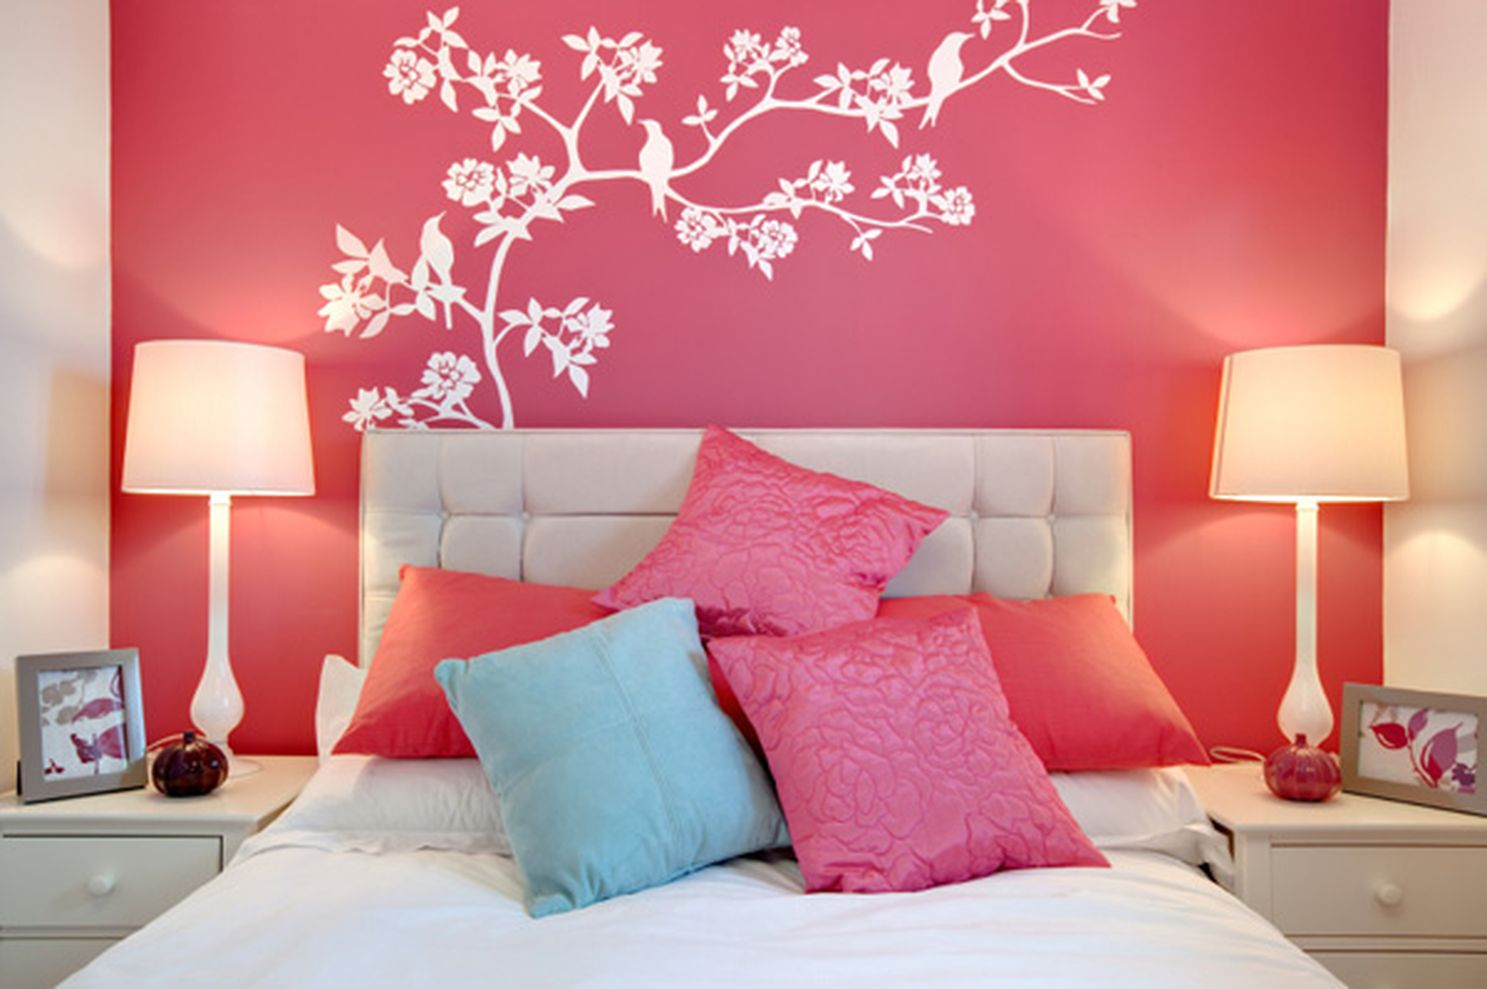 86 Cute Bedroom Design Ideas with Pink And Green Walls - ROUNDECOR